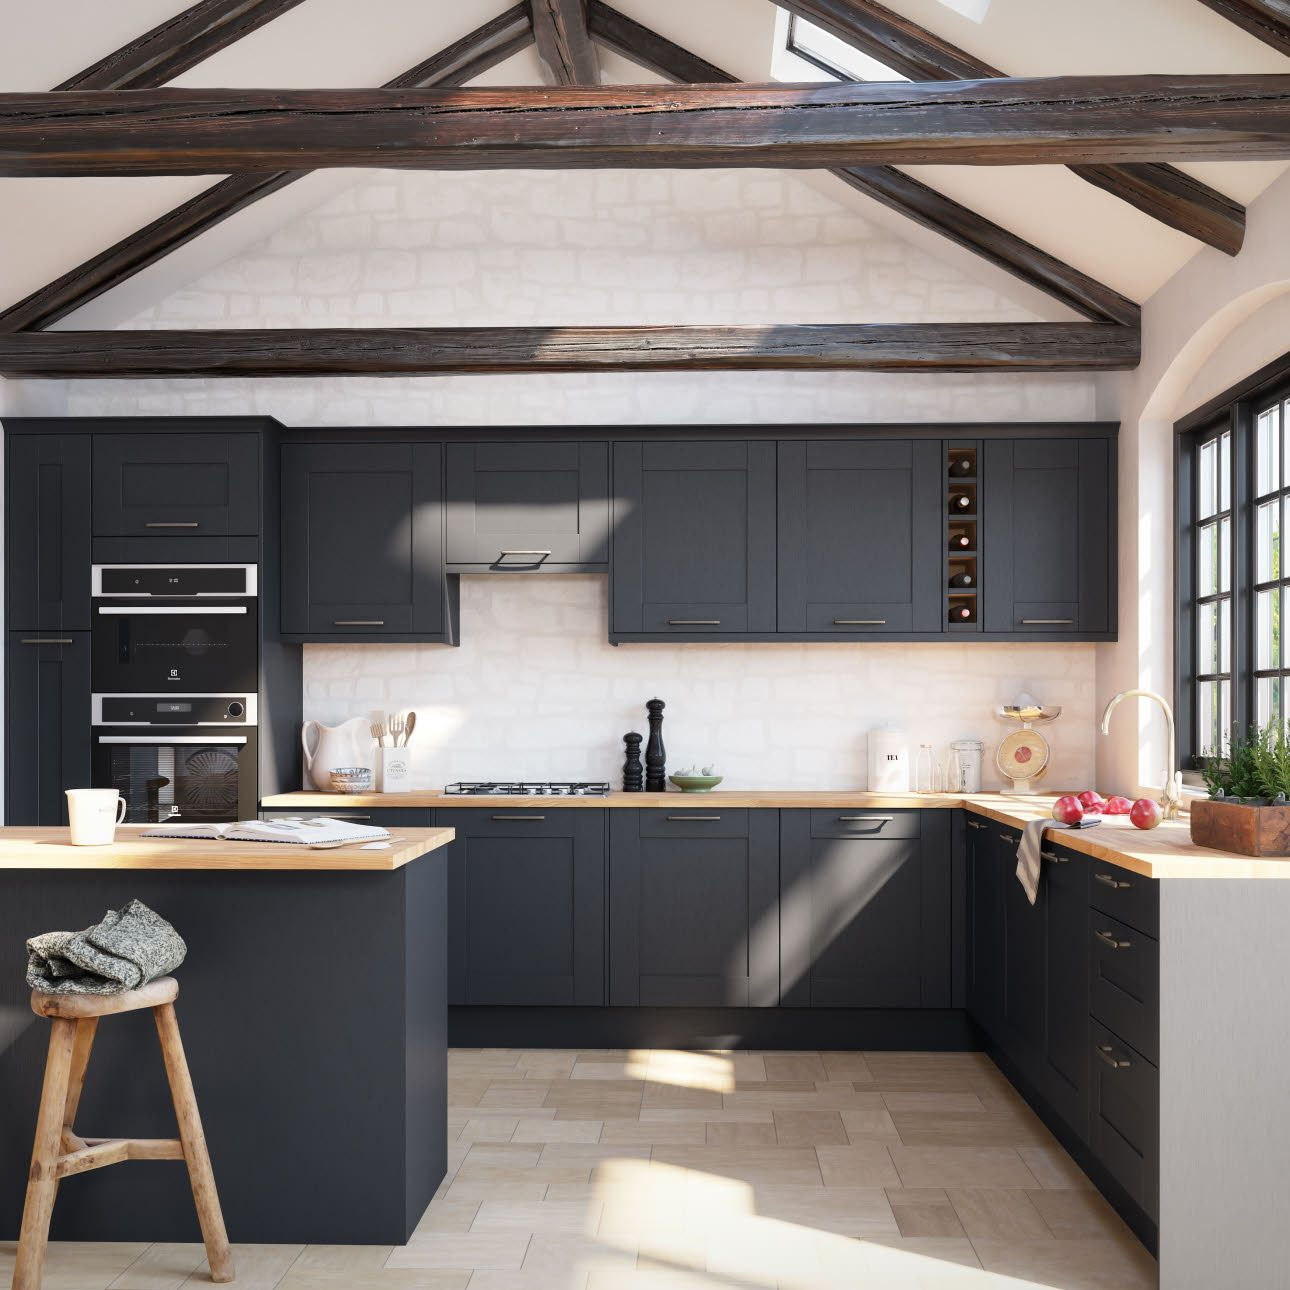 5 Things To Consider When Hiring A Kitchen Designer To Increase Your House Value House Design Kitchen Modern L Shaped Kitchens Tiny House Kitchen